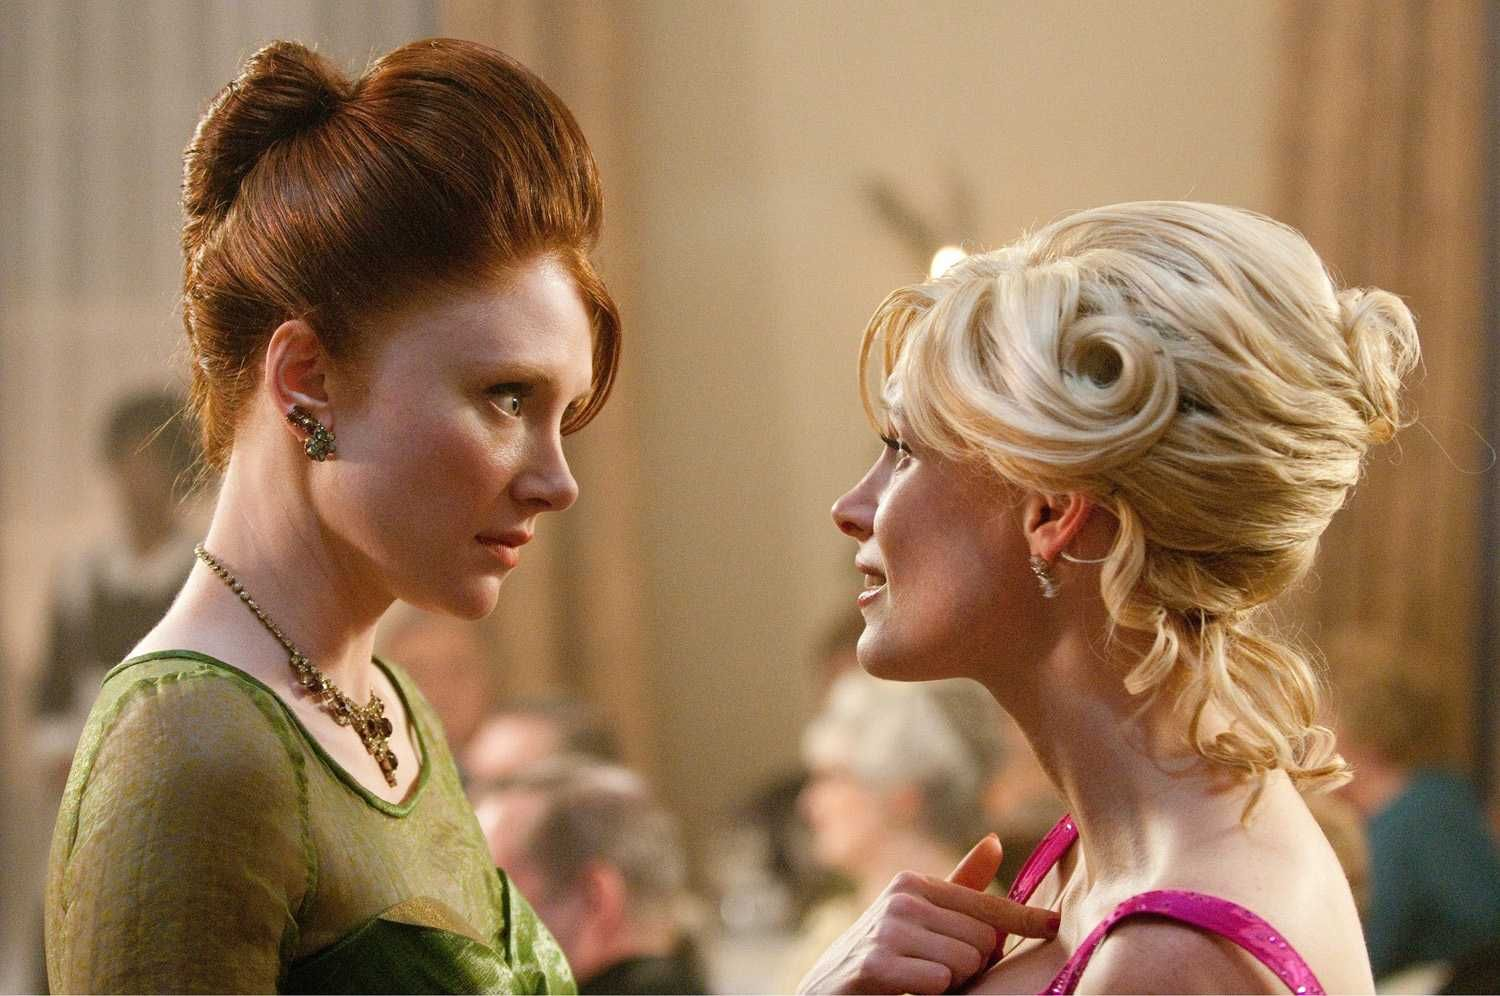 Hilly Holbrook Bryce Dallas Howard Celia Foote Jessica Chastain The Help 2011 Movie Stills Jessica Chastain Oscar Winning Movies Touchstone Pictures